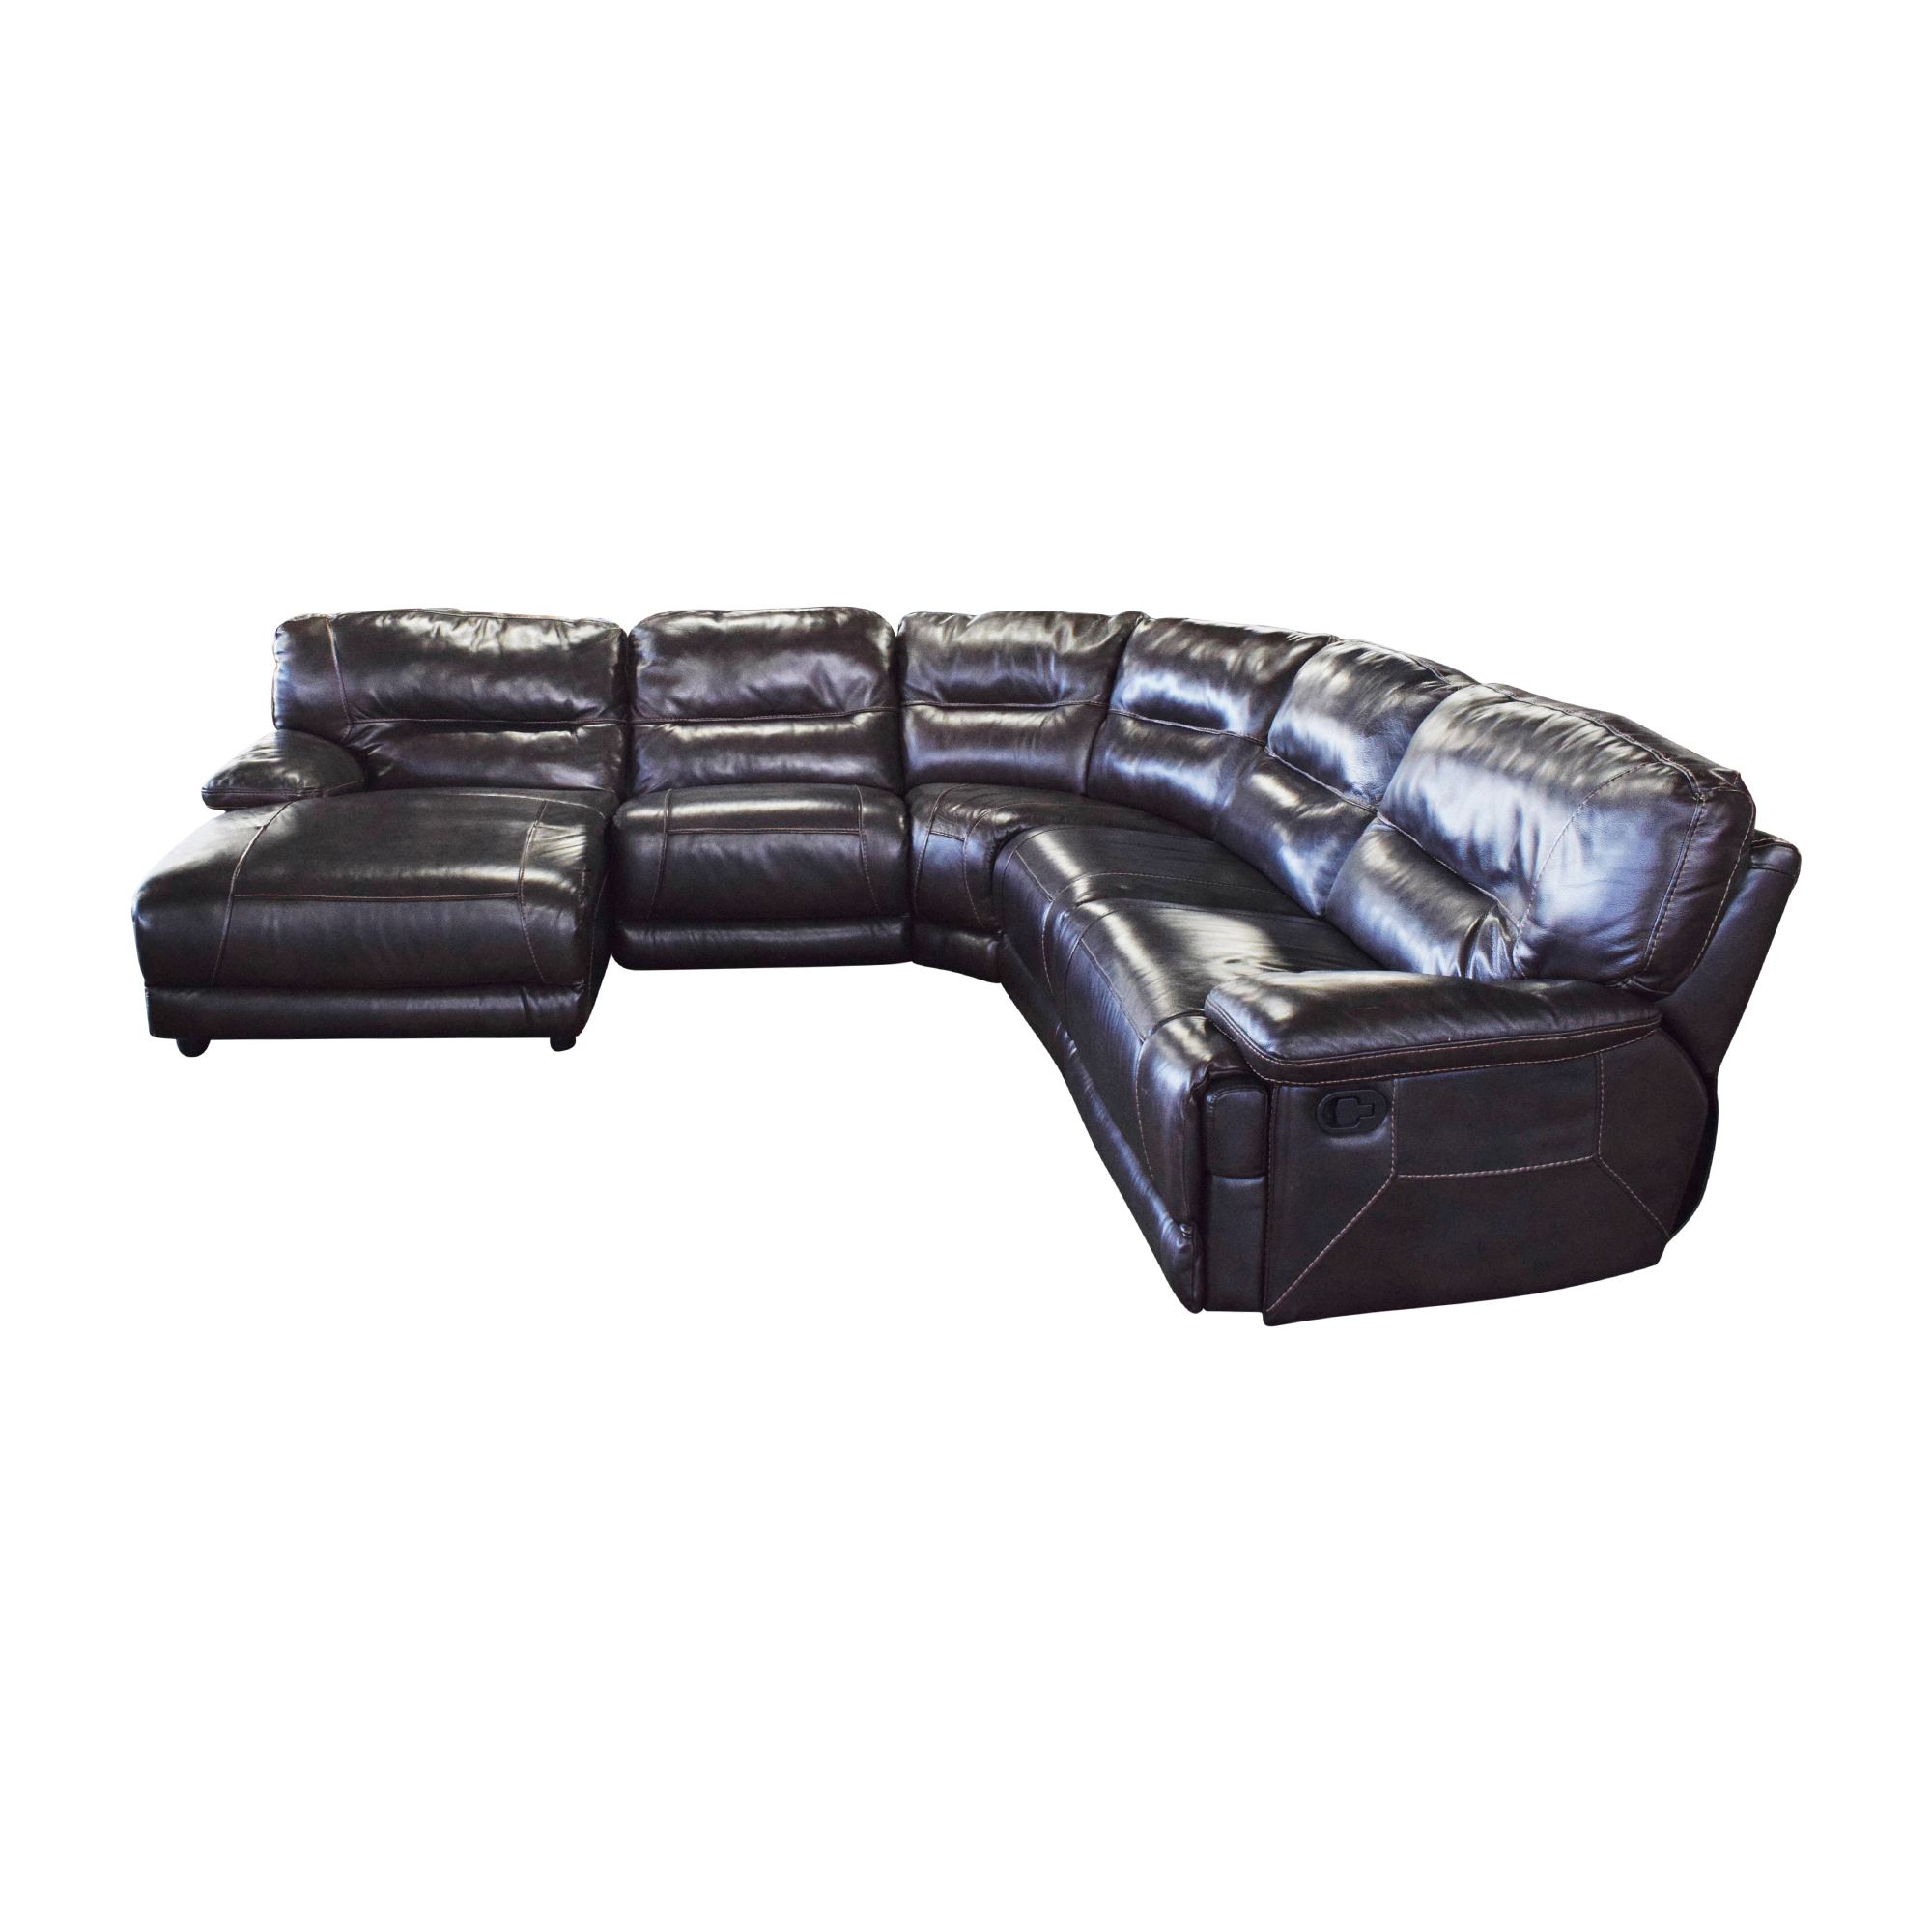 Curved Reclining Sectional Sofa / Sofas